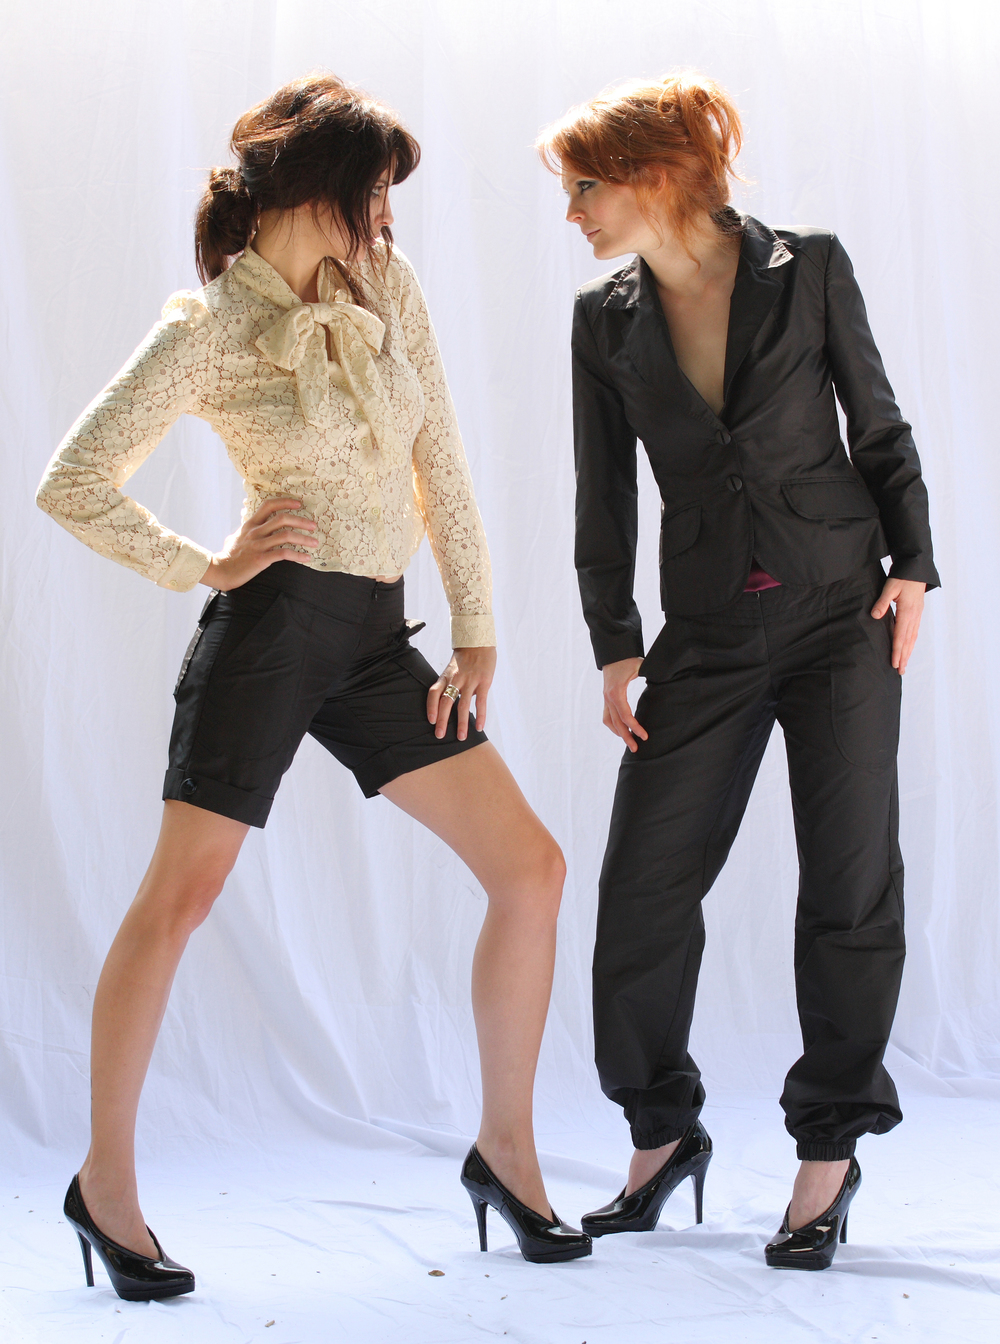 Scarf-Tied Blouse in Flower Lace  Quilt Waist 4-Pocket Cuffed Short in Black Silk Taffetta   On the right   Shrunken Tux Jacket in Black Silk Taffetta  Quilt Waist G.A. Harem Pant in Black Silk Taffeta